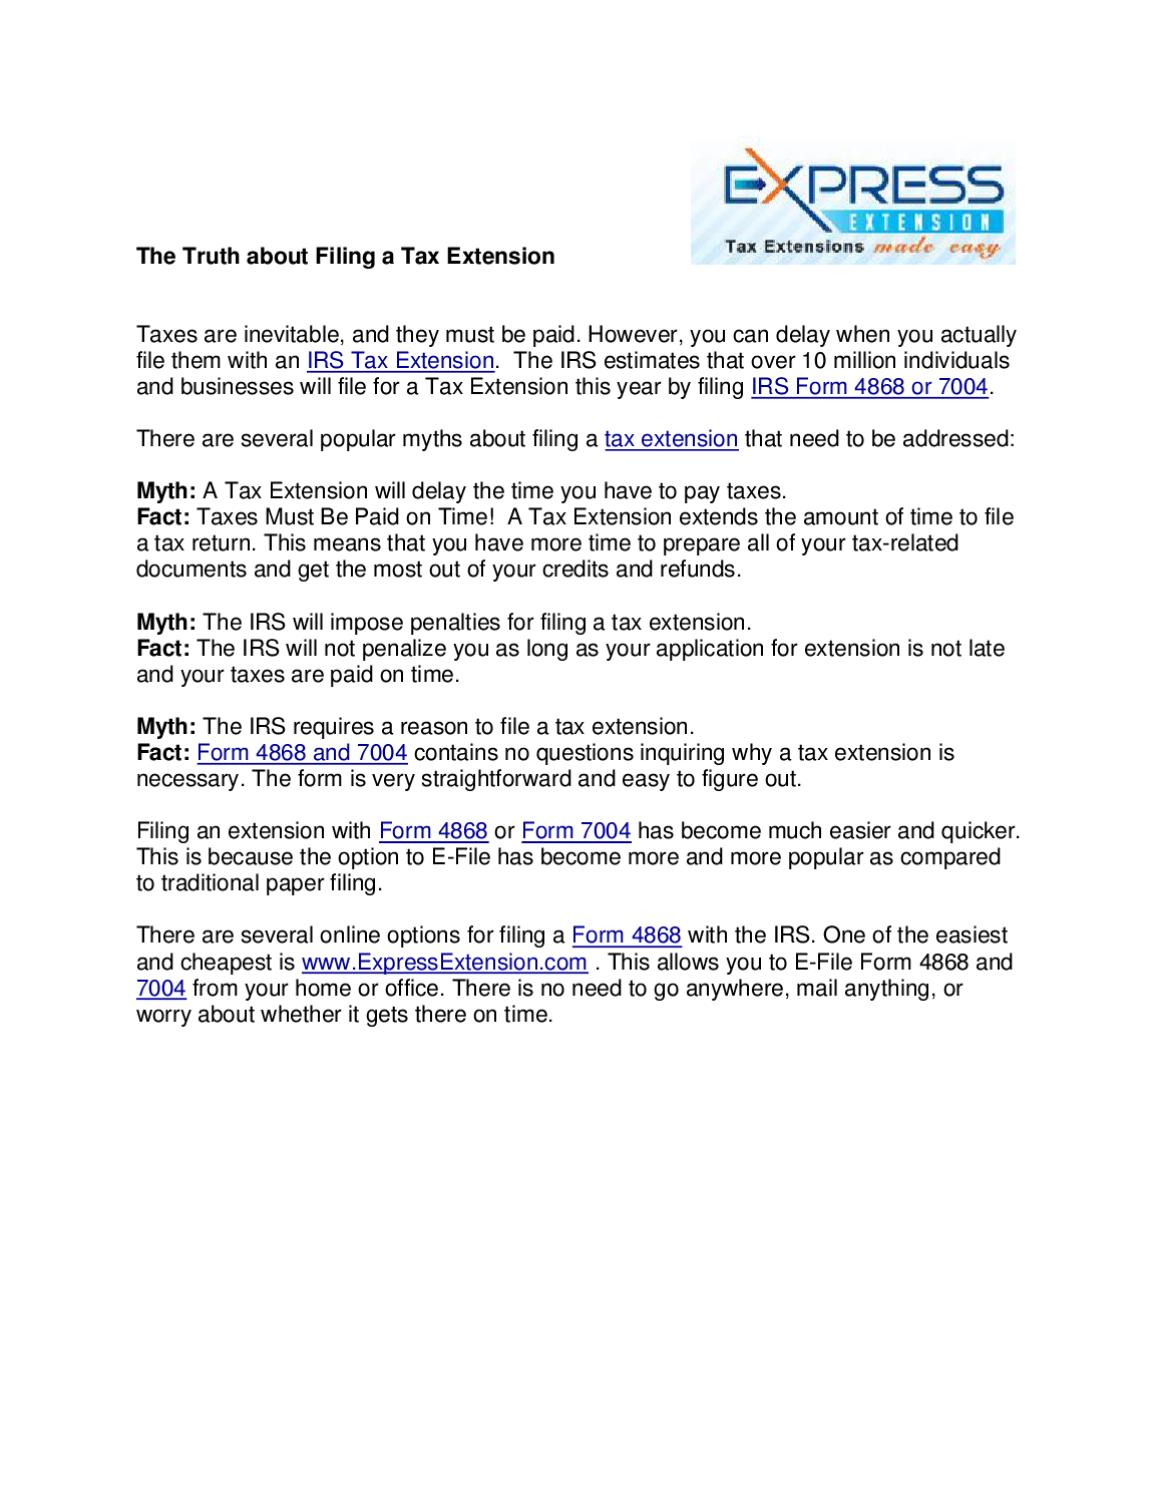 The Truth About Filing A Tax Extension By Express Tax Extension Issuu